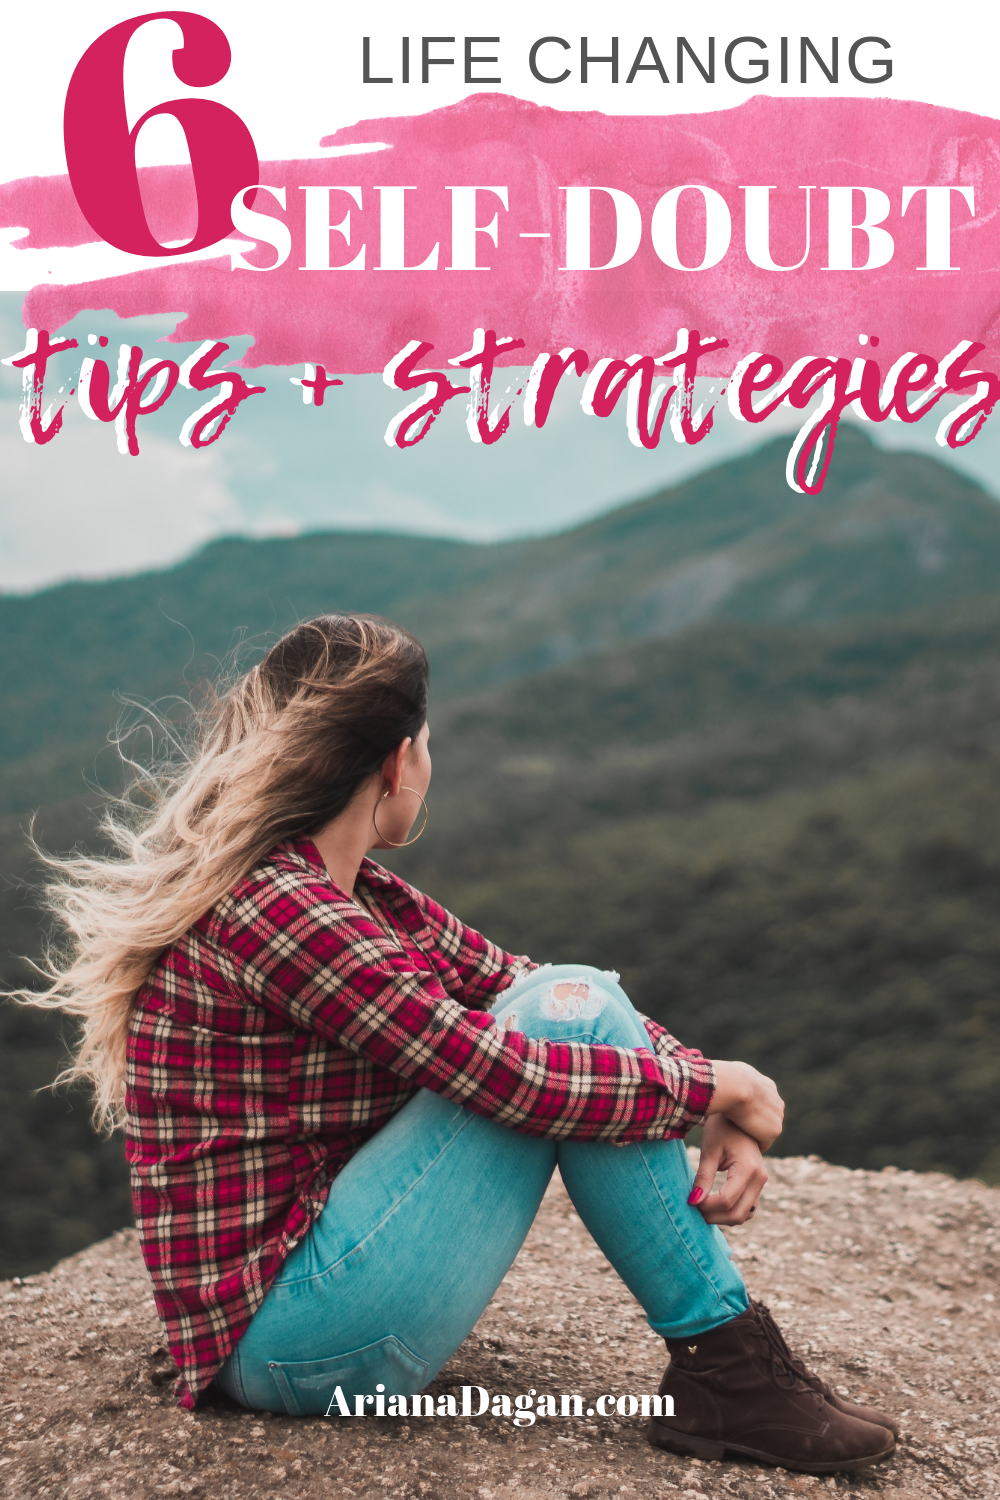 6 Life Changing self doubt tips and strategies by Ariana Dagan